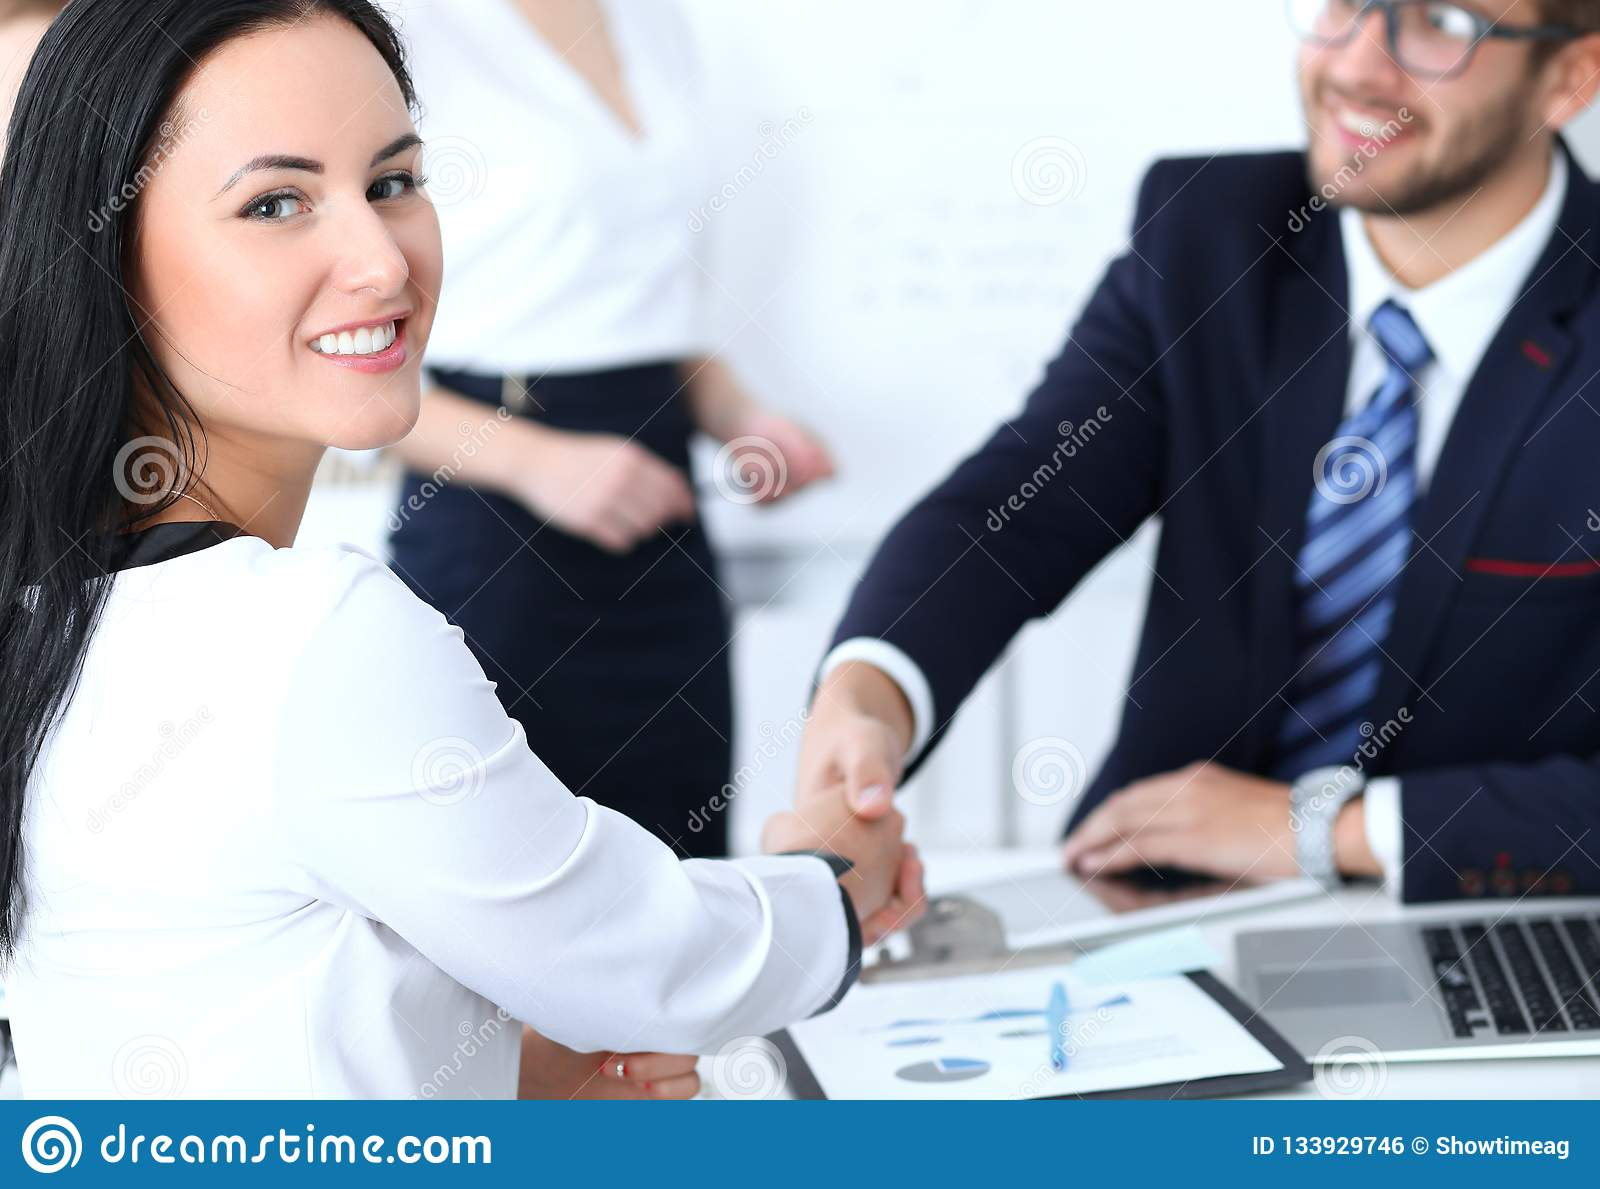 Business handshake at meeting or negotiation in the office. Two businesspeople partners are satisfied because signing